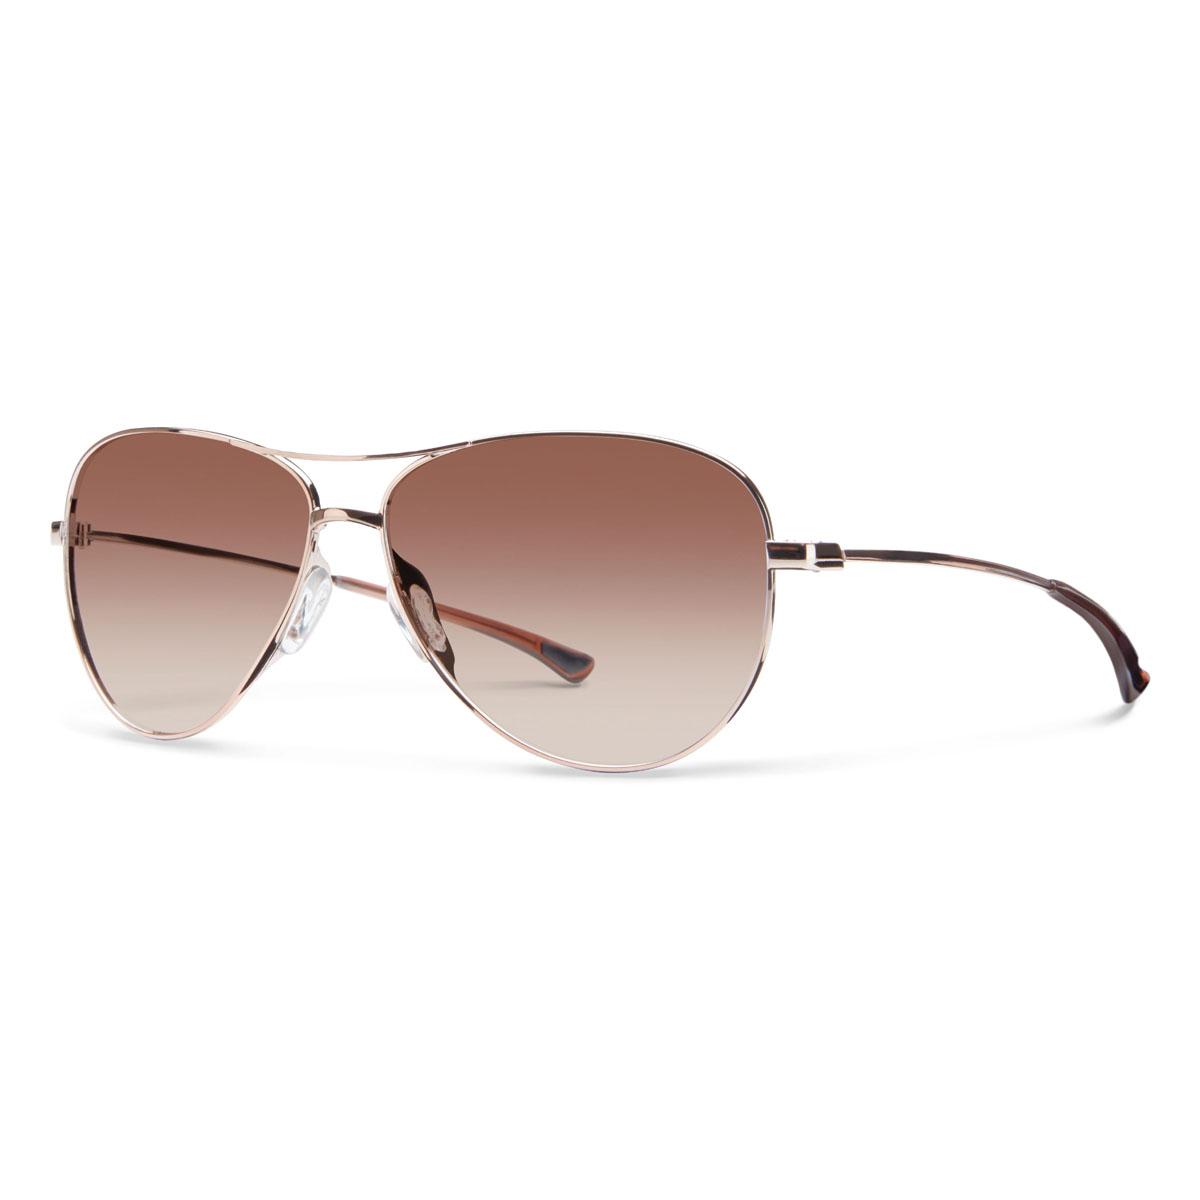 ce9c94e69b Smith Optics Langley Sunglasses - Rose Gold Frame Sienna Gradient Lens -  LAPCSNGRGD